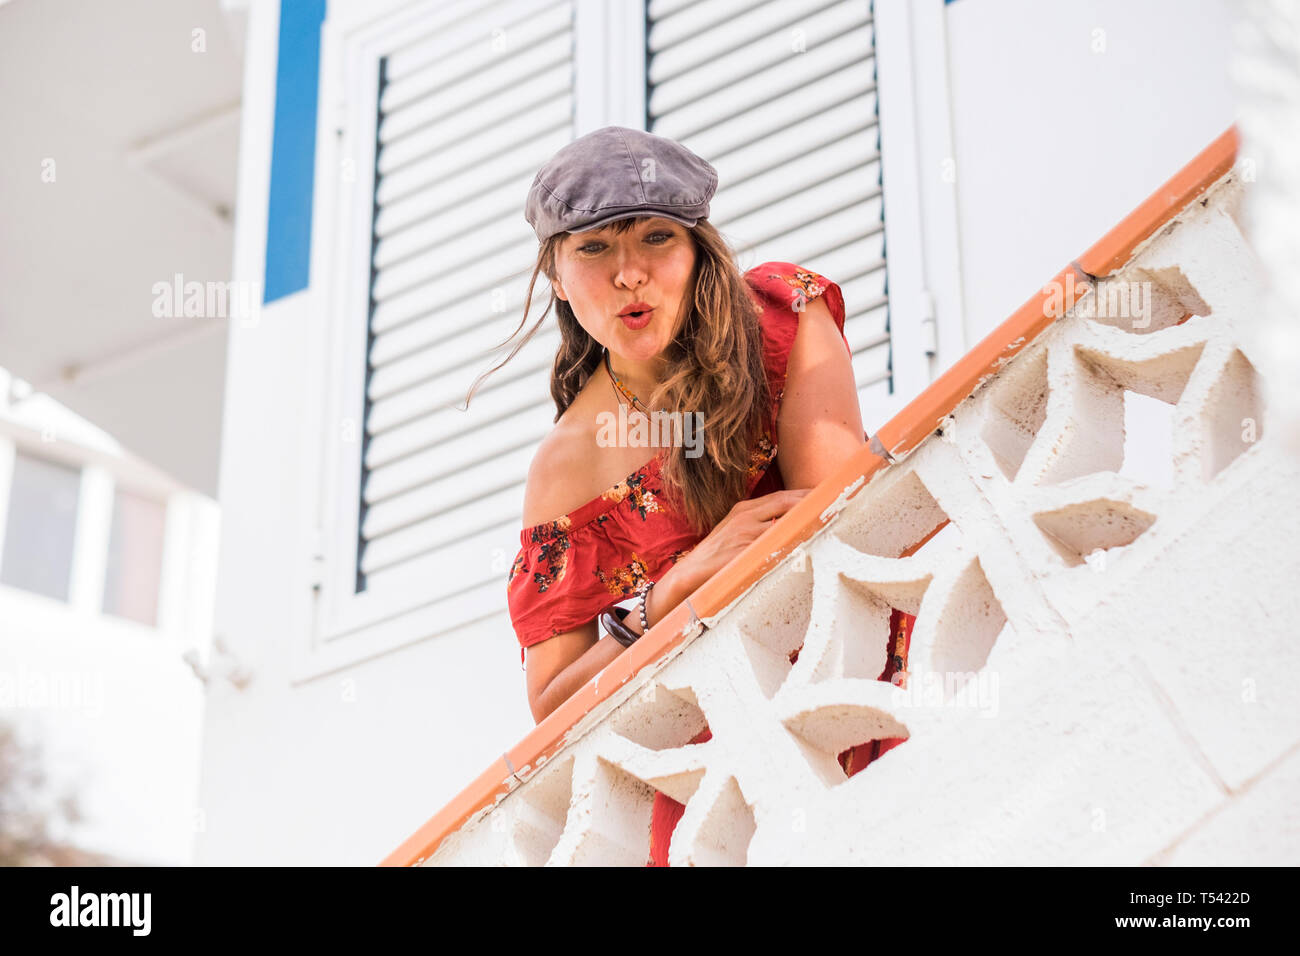 Nice beautiful trendy gitl with hat and red dress sendinkg kiss from a white balcony at home - cute people enjoying life and having fun - tourist and  Stock Photo